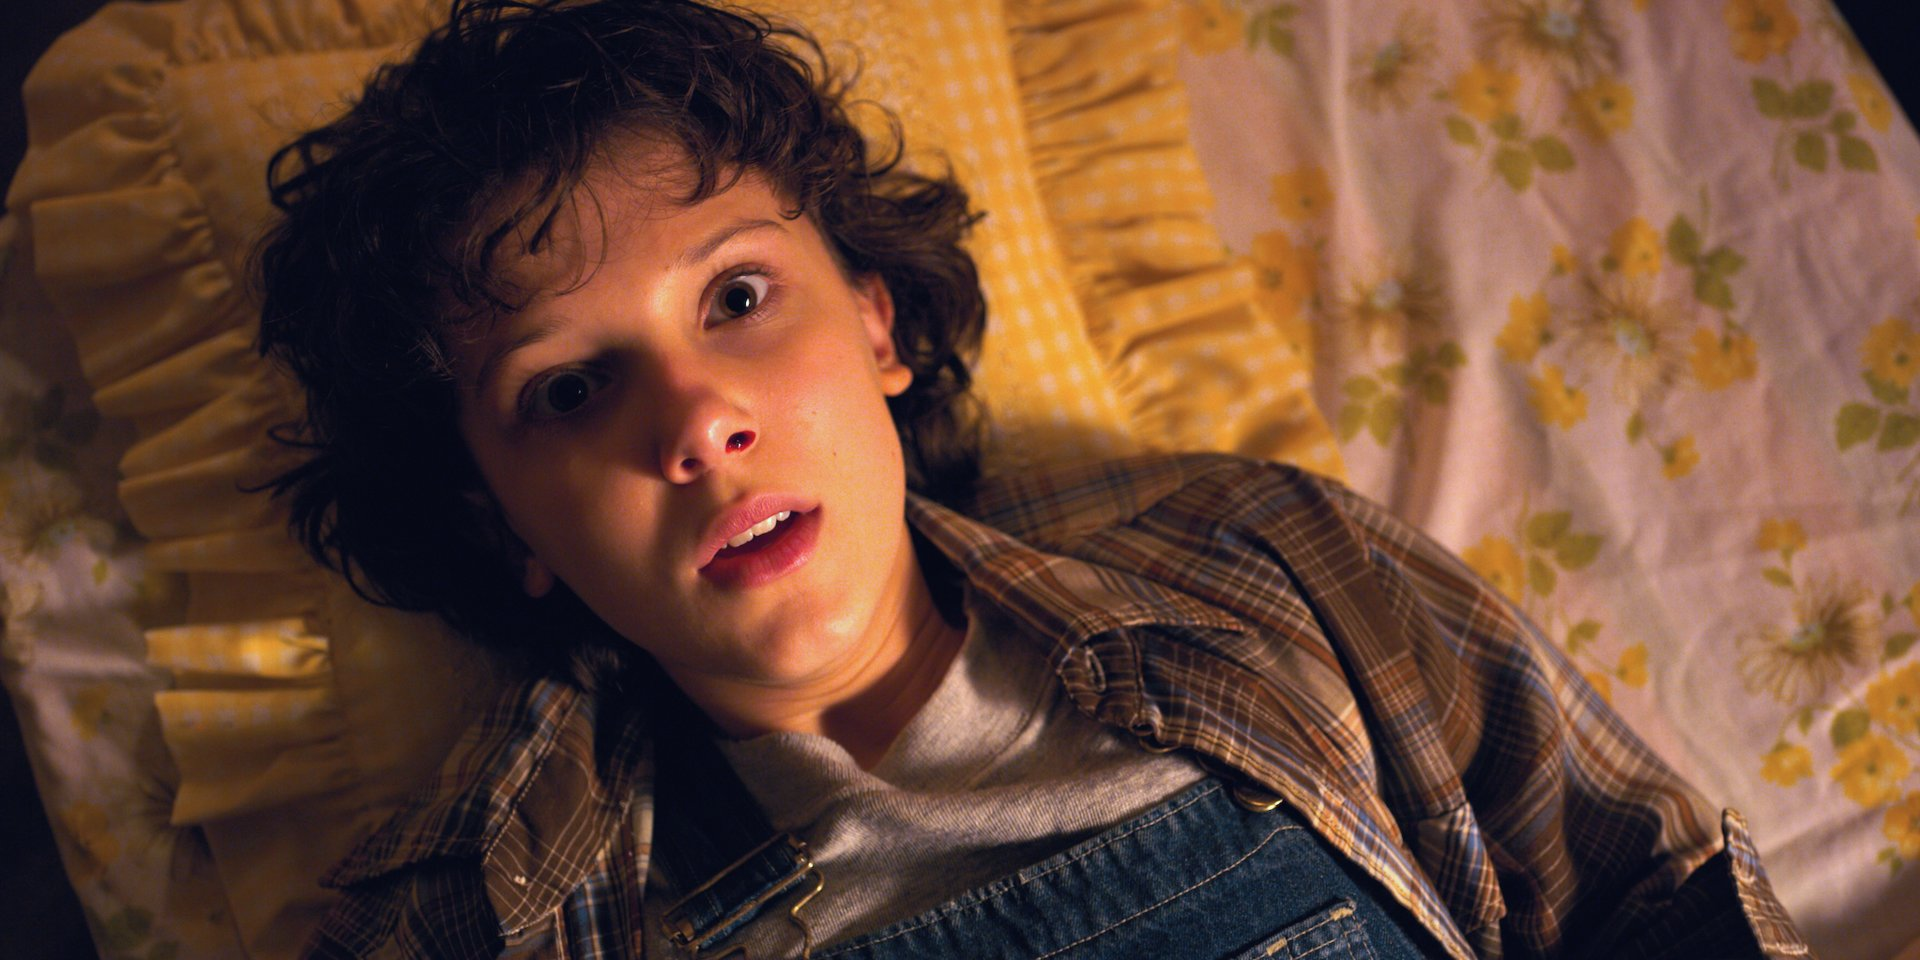 Stranger Things' Season 3 Trailer, Release Date, Spoilers